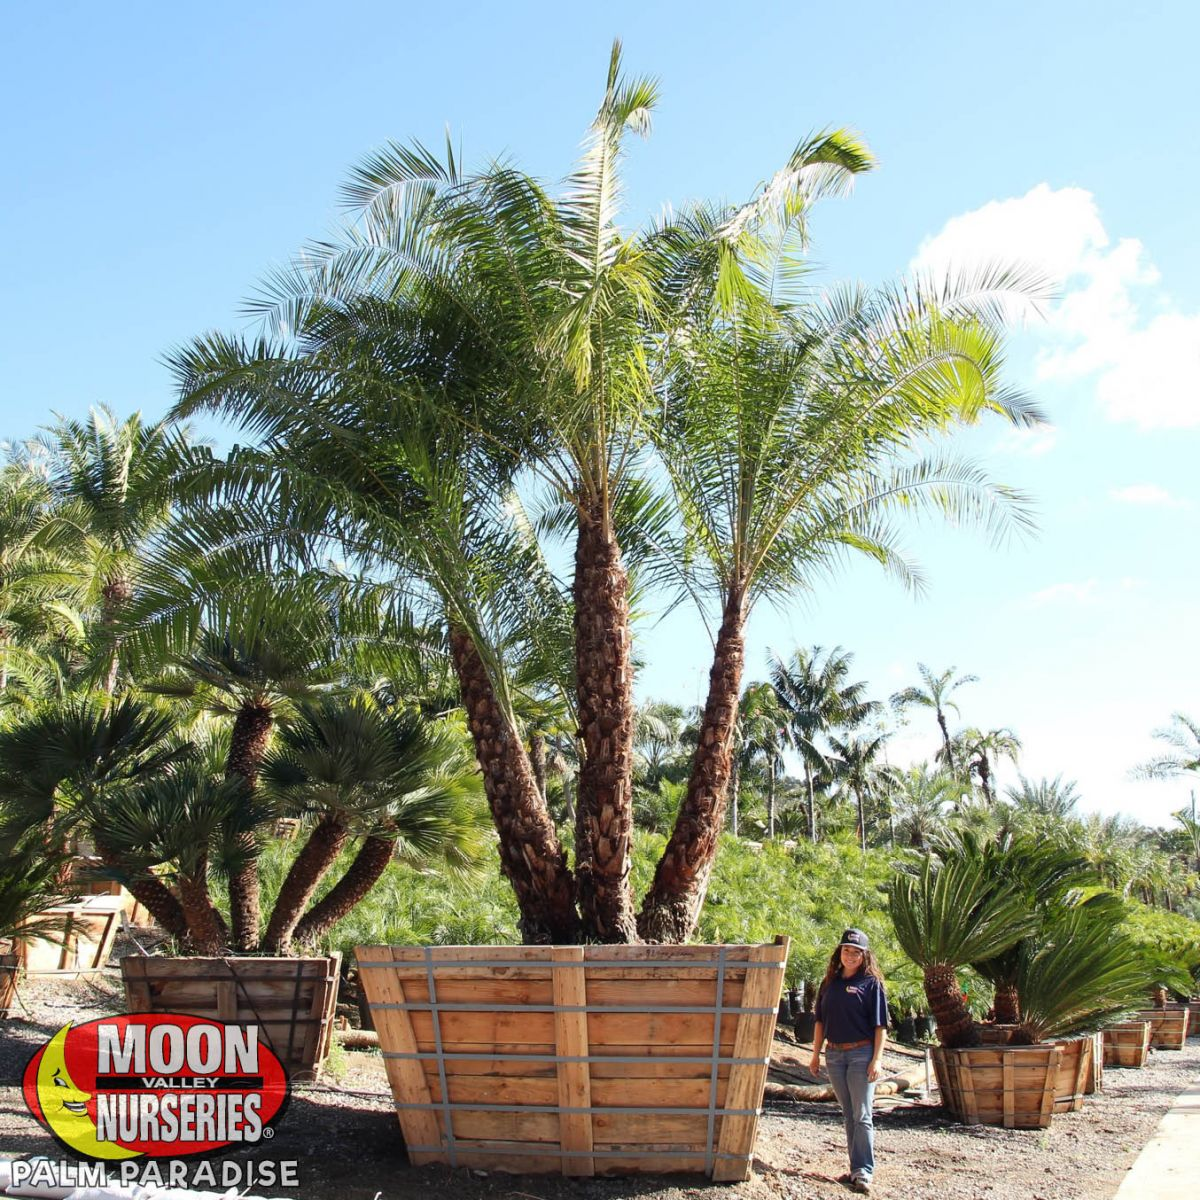 Senegal Date Palm Palm Tree Palm Paradise Nursery